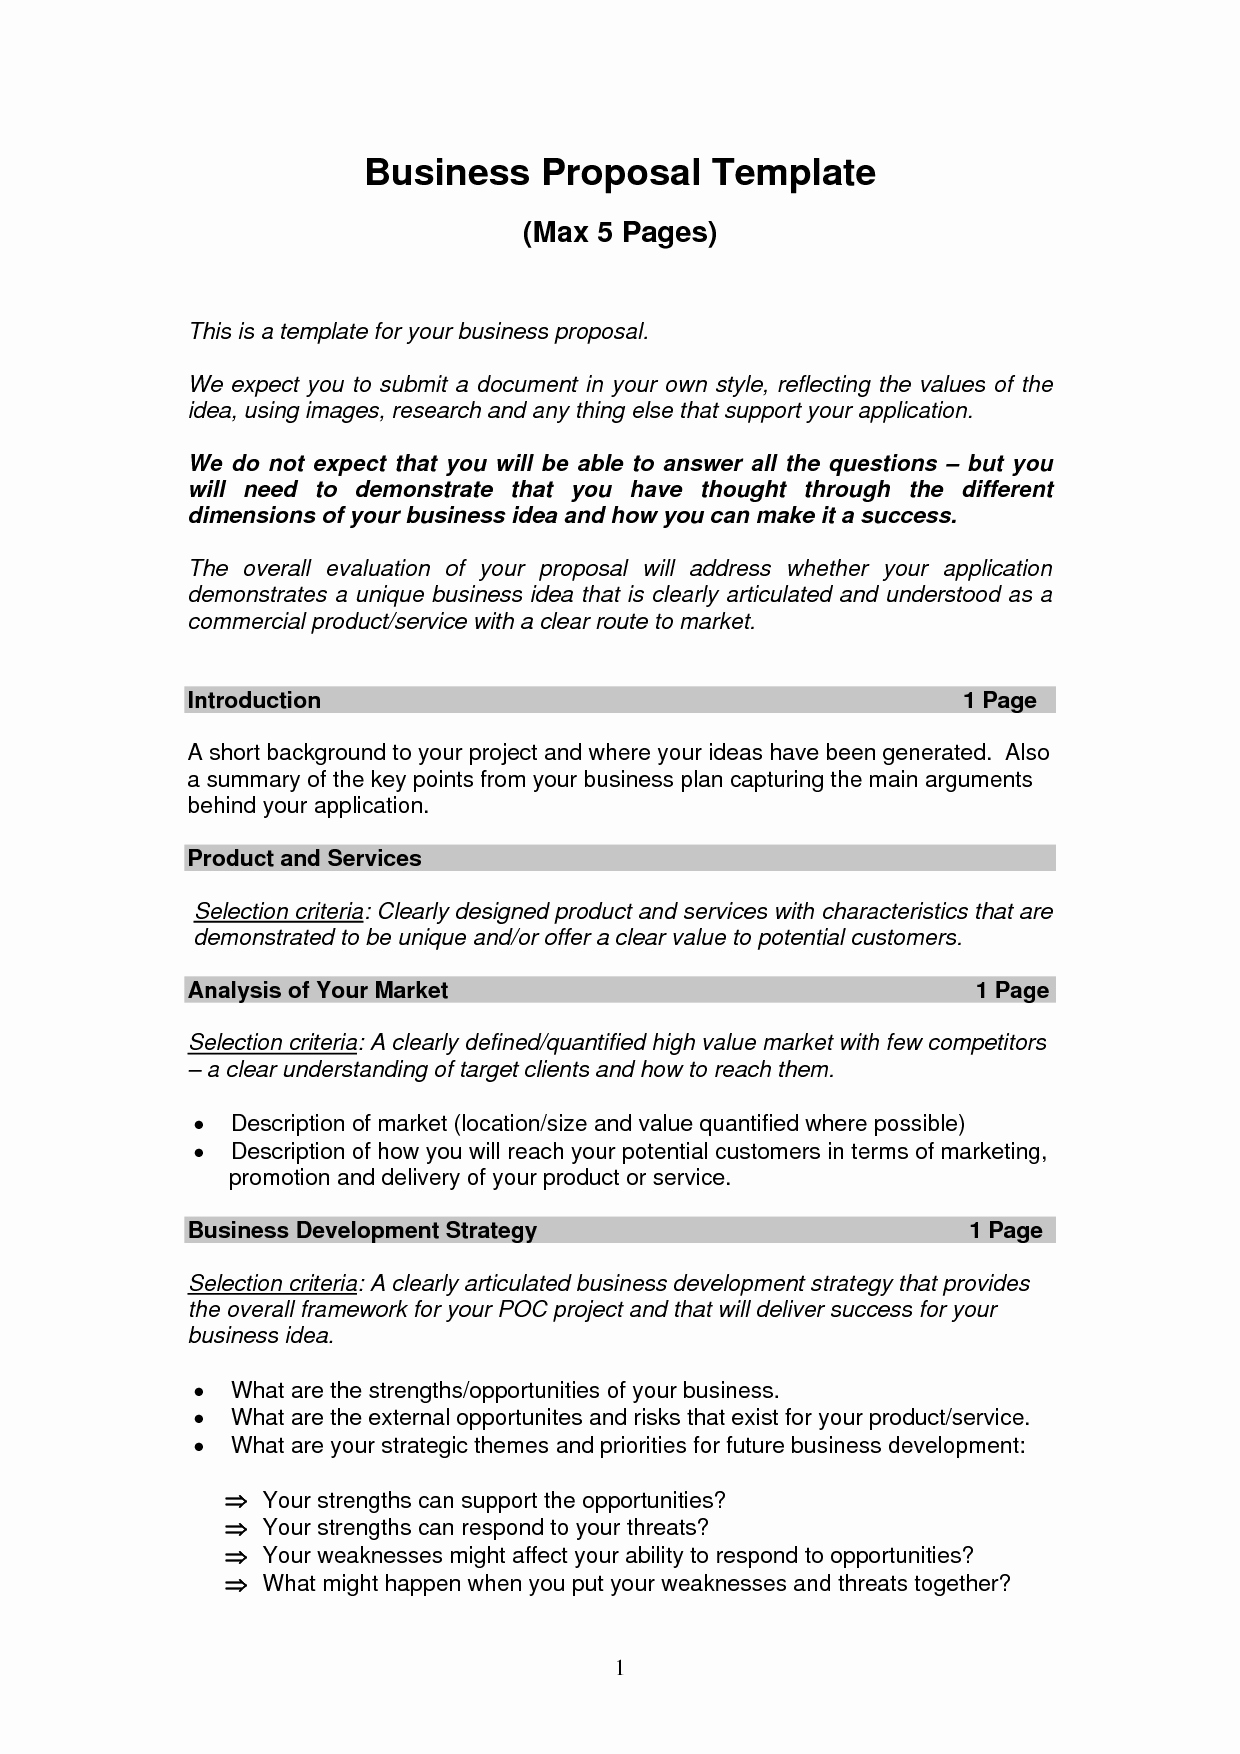 Business Proposal Template Pdf Best Of Printable Sample Business Proposal Template form